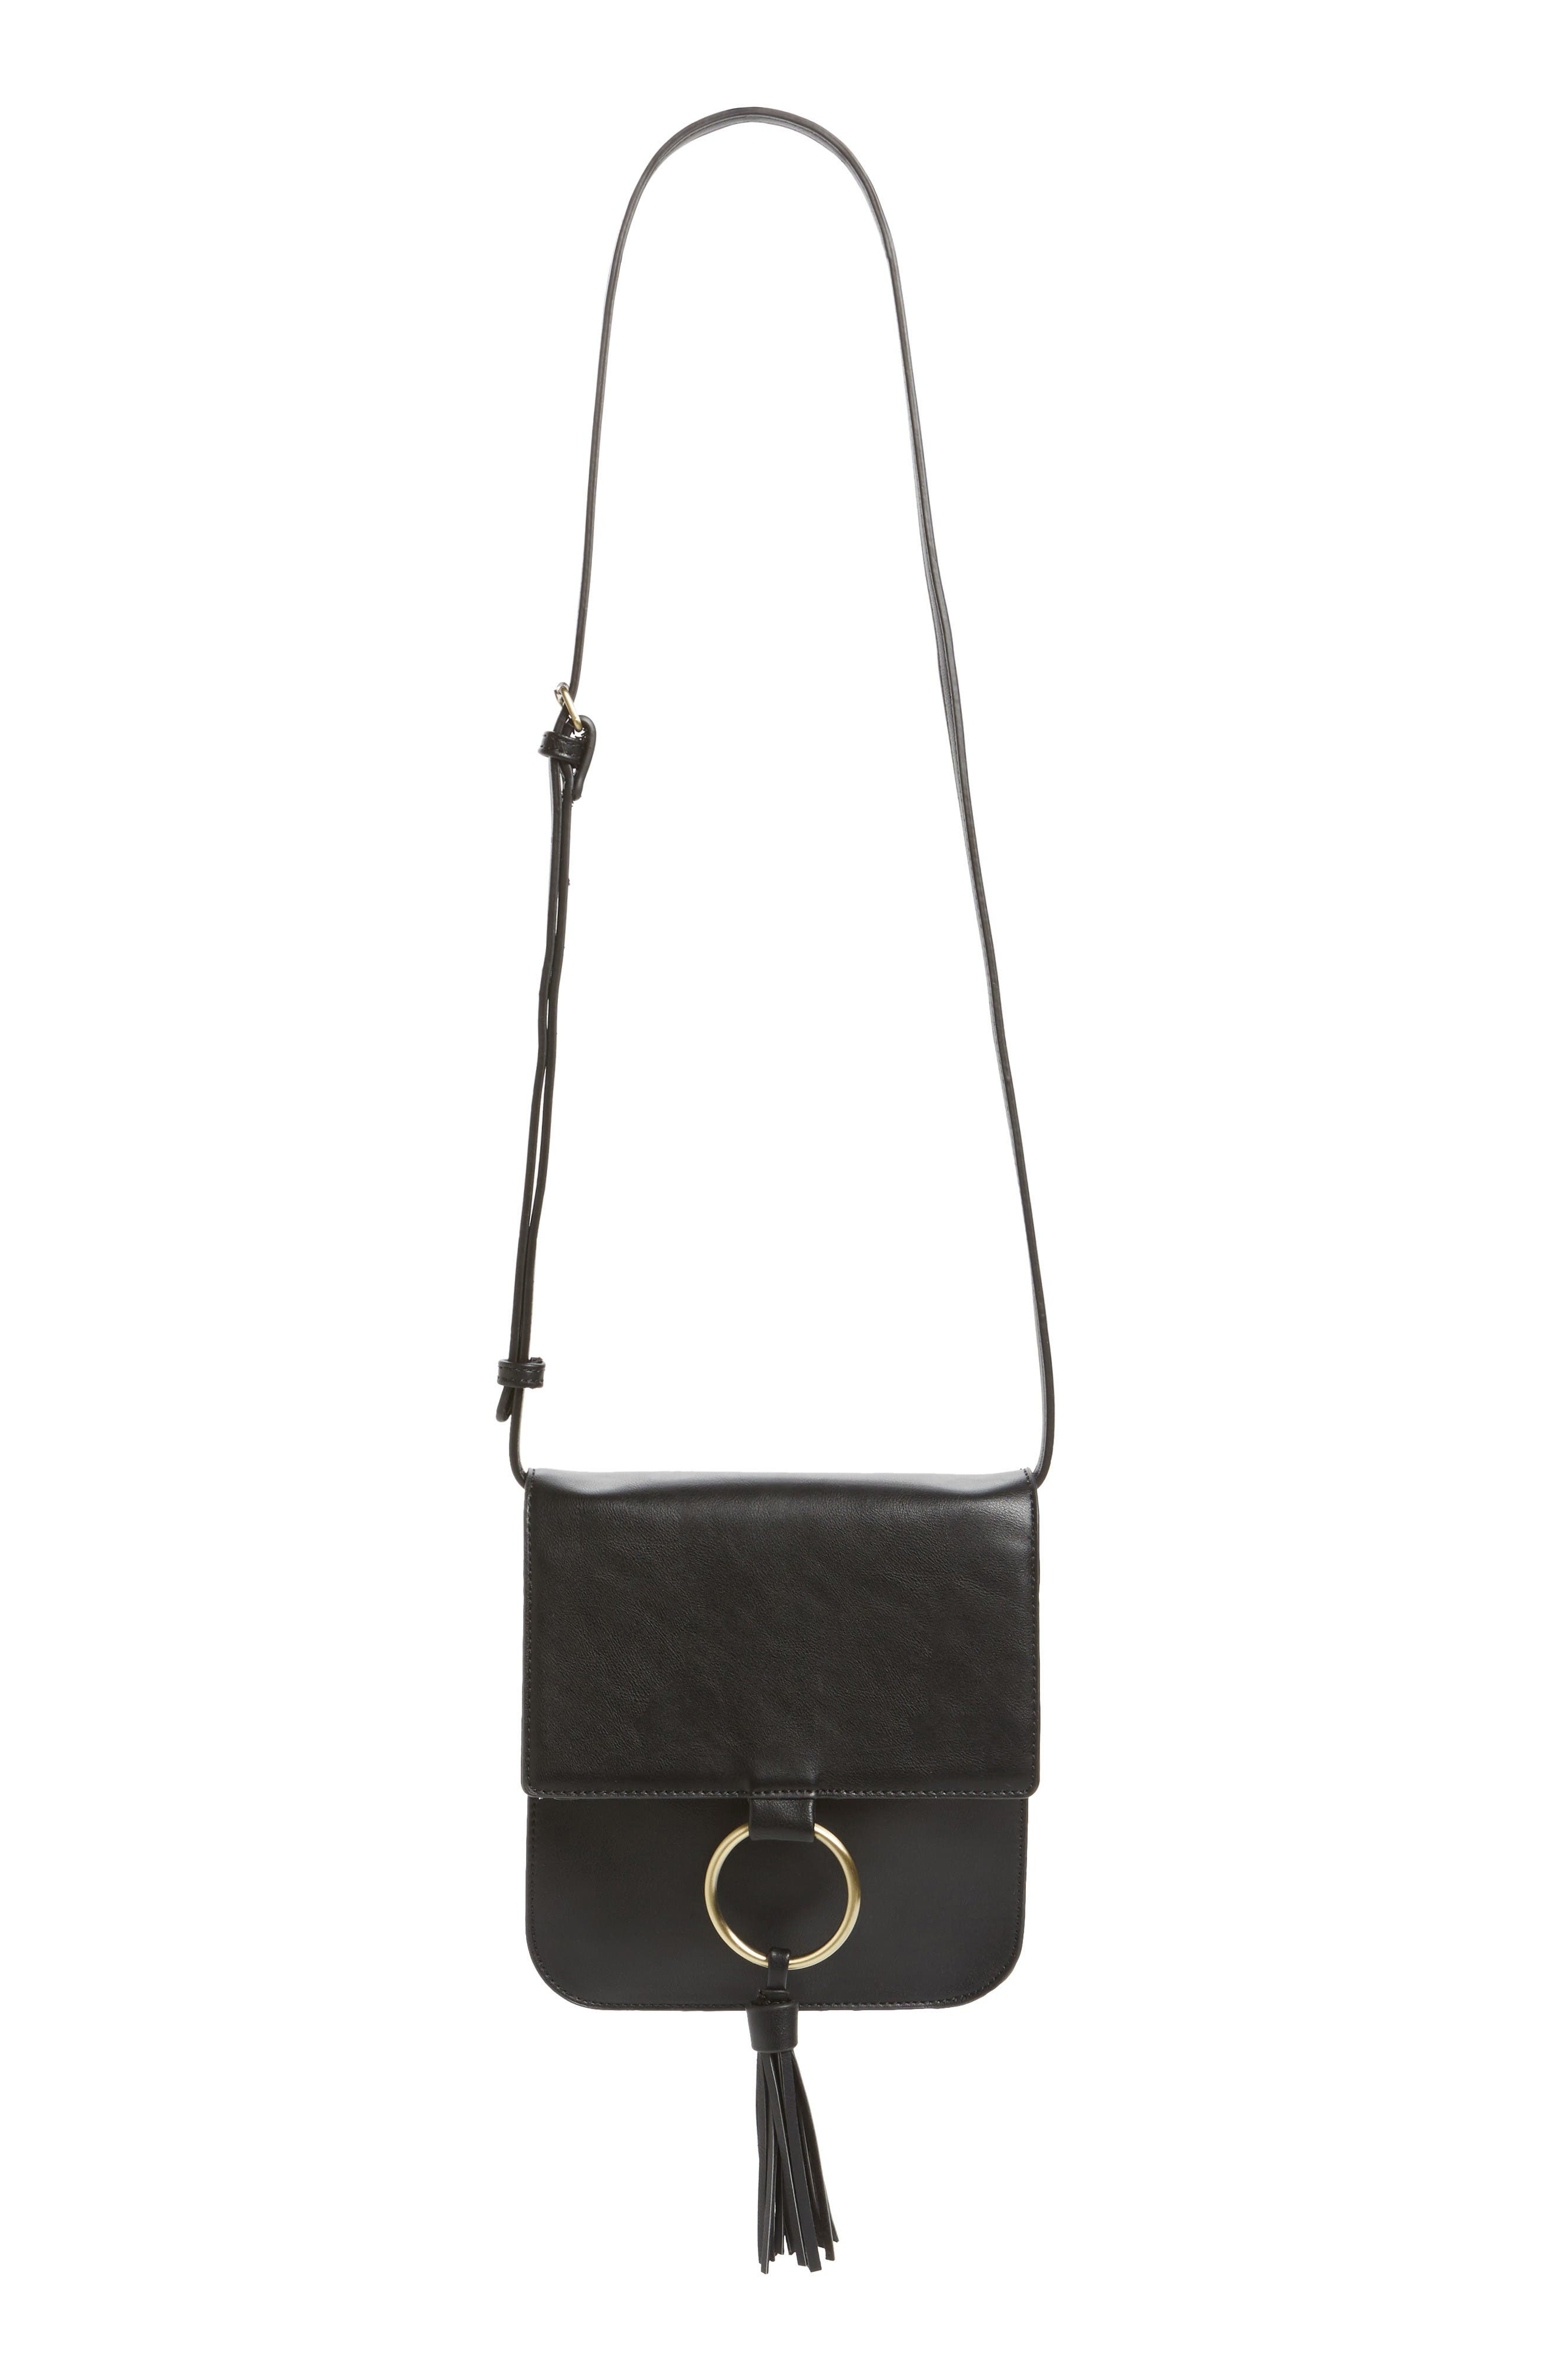 Alternate Image 1 Selected - Sole Society Square Crossbody Bag